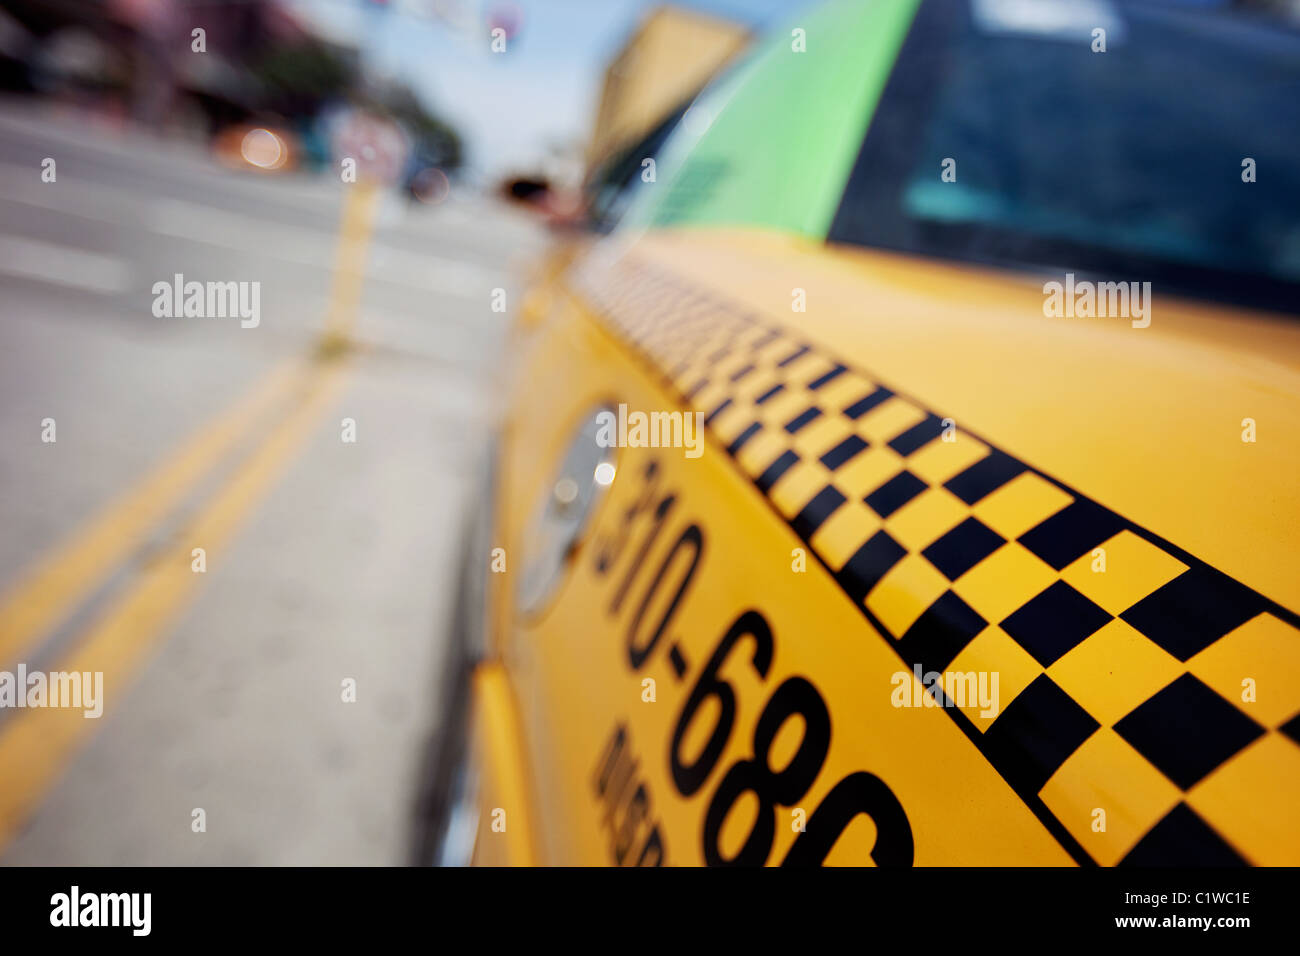 Close-up de una accidentada taxi dispararon desde la parte trasera, en Santa Monica, CA Imagen De Stock